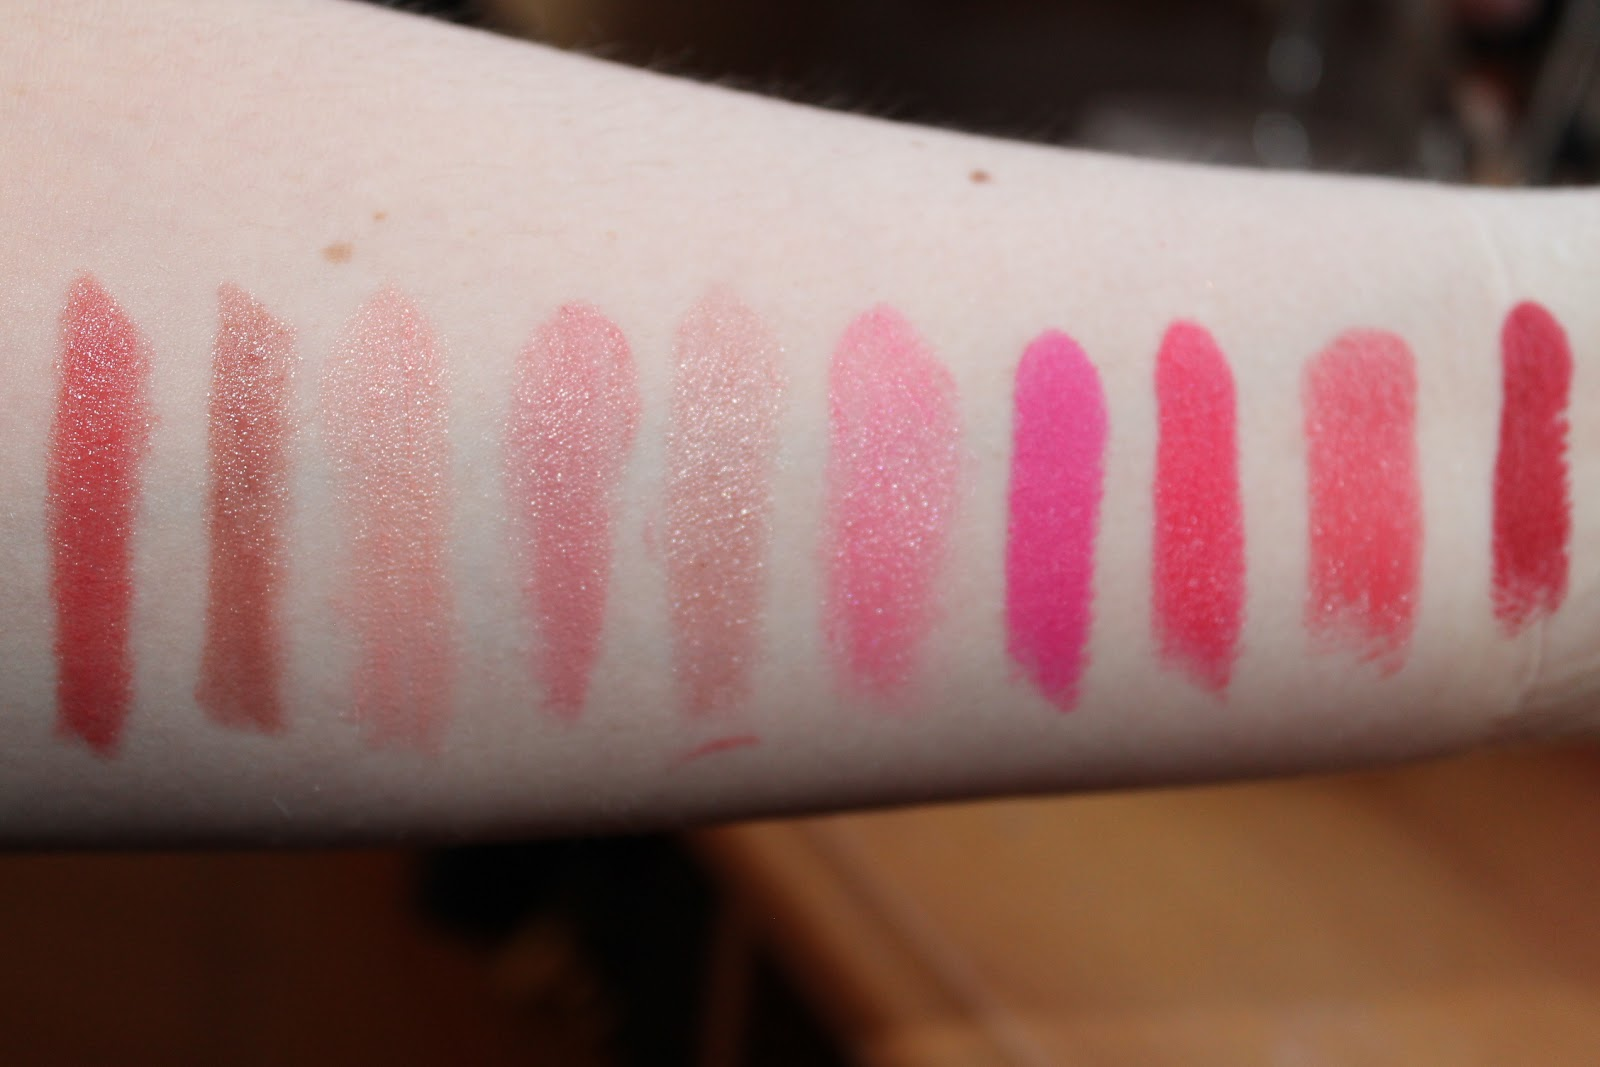 The Make Up Junkie Blog: My Mac Lipstick Collection